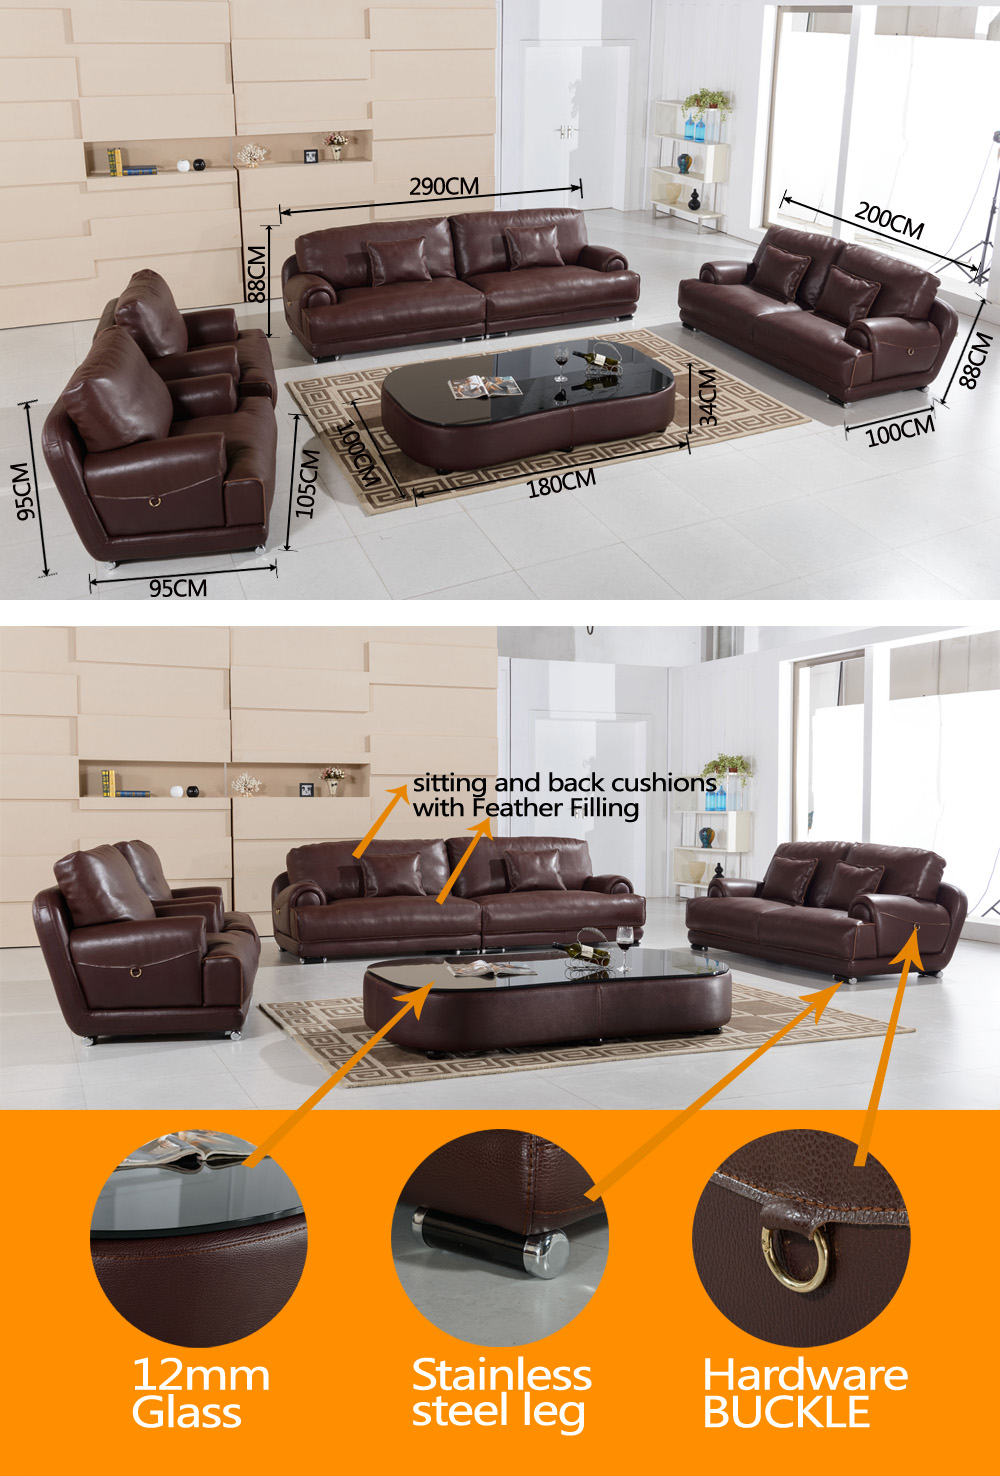 Big Sofa 290 Cm India Living Room Luxury Furniture Of Big Size Group Stanley Genuine Leather Sofa Set Buy Luxury Genuine Leather Sofa Set Living Room Genuine